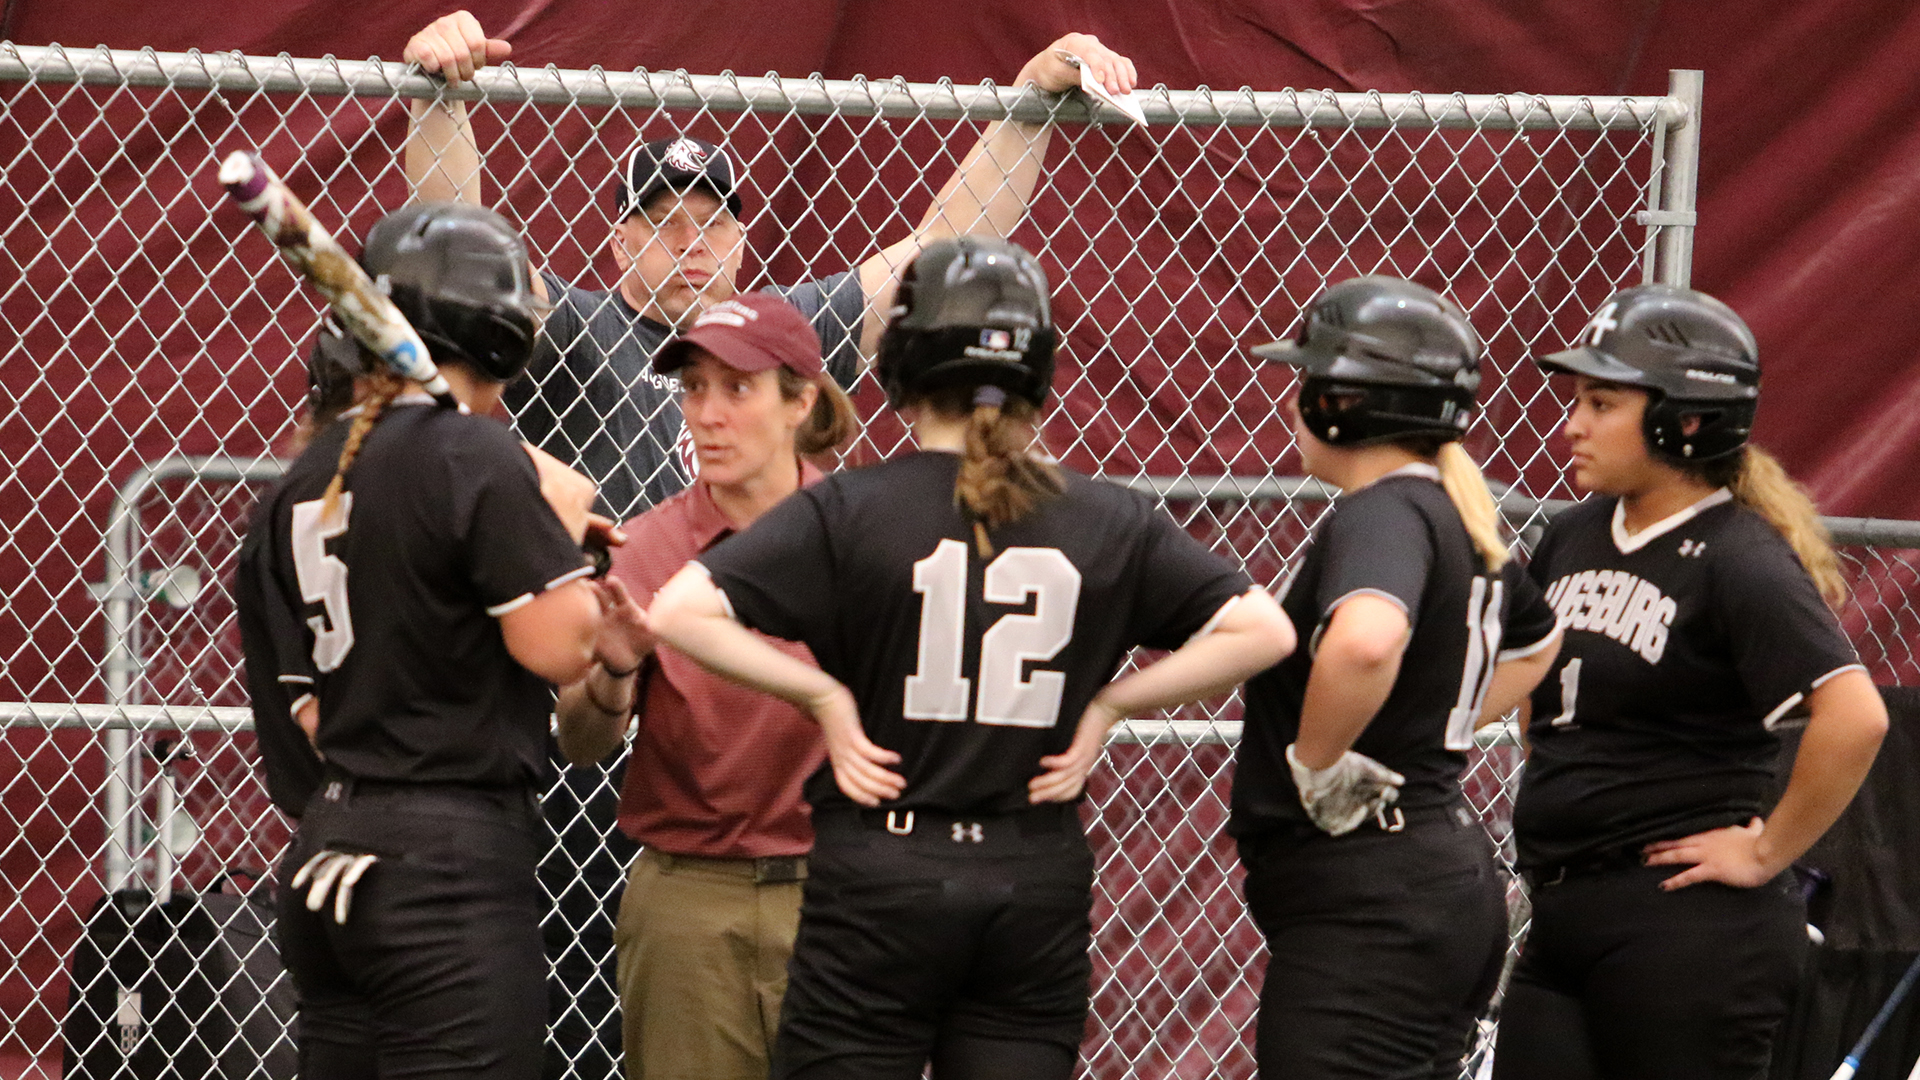 Augsburg Softball Scores Results Schedule Roster & Stats MIAC